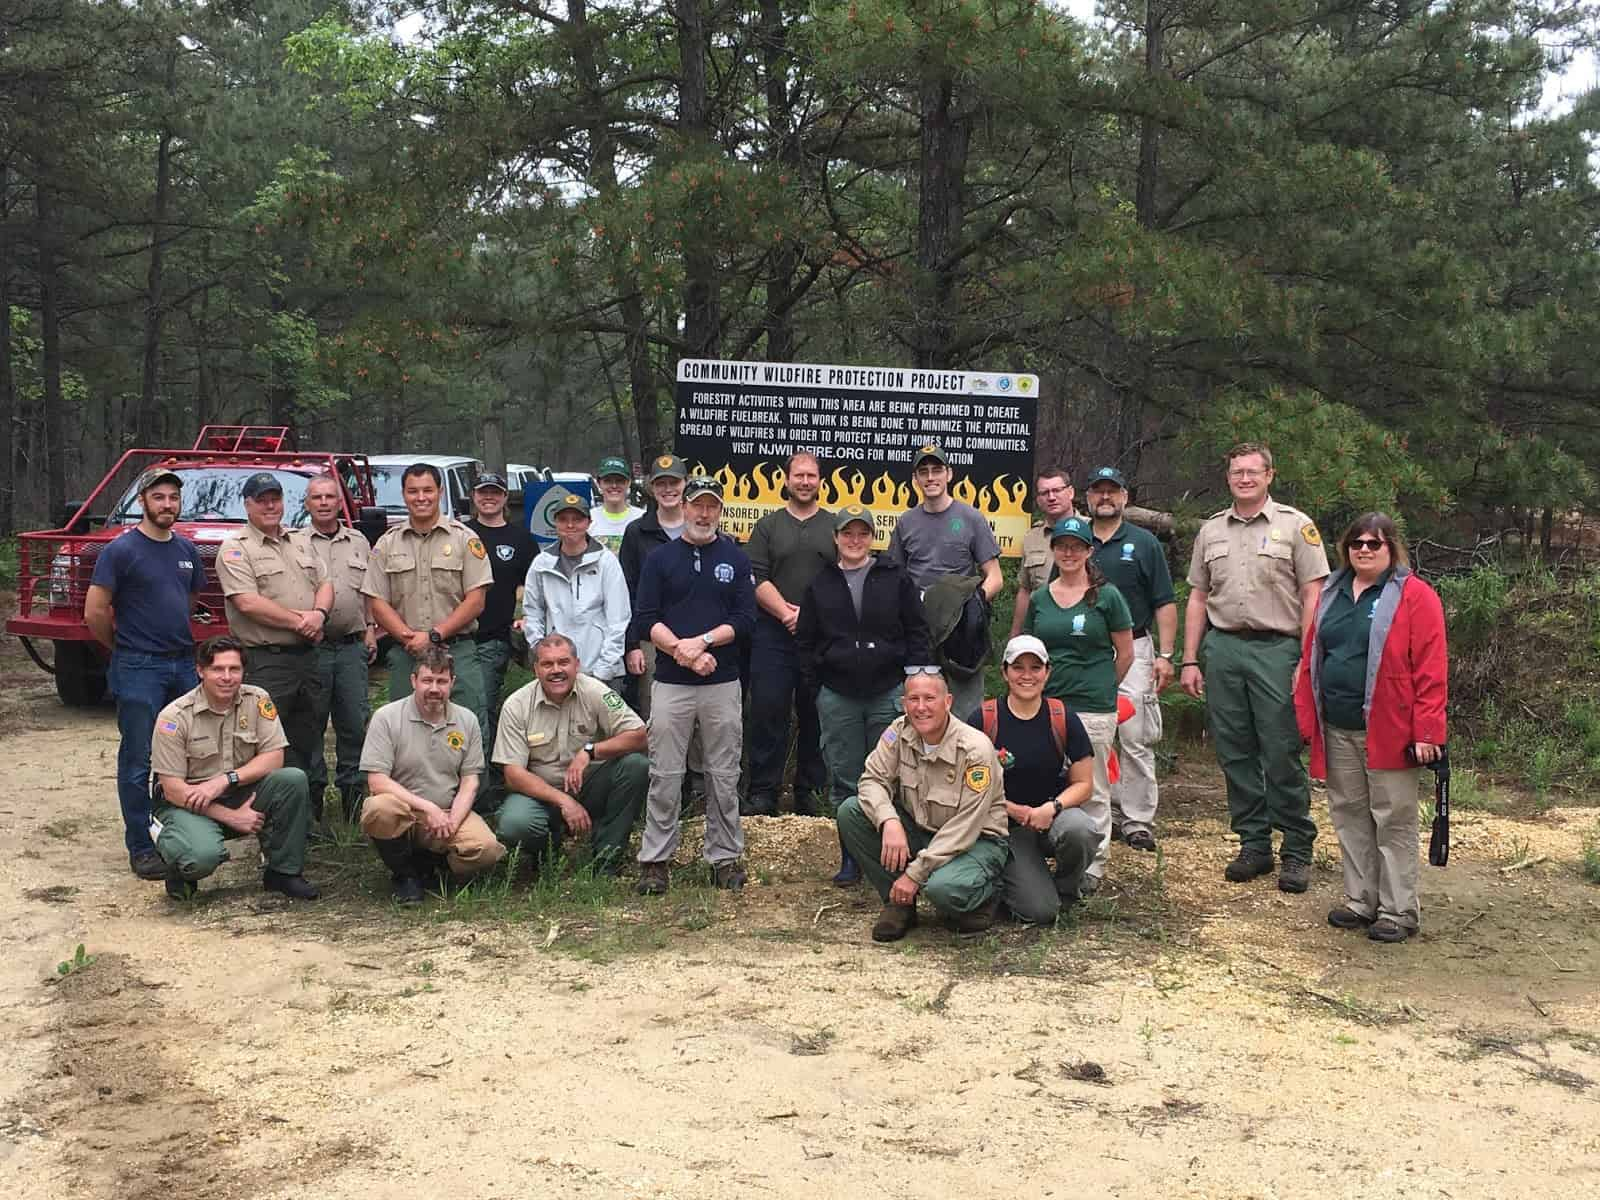 Group of Fire management staff in northeastern U.S. pine forests